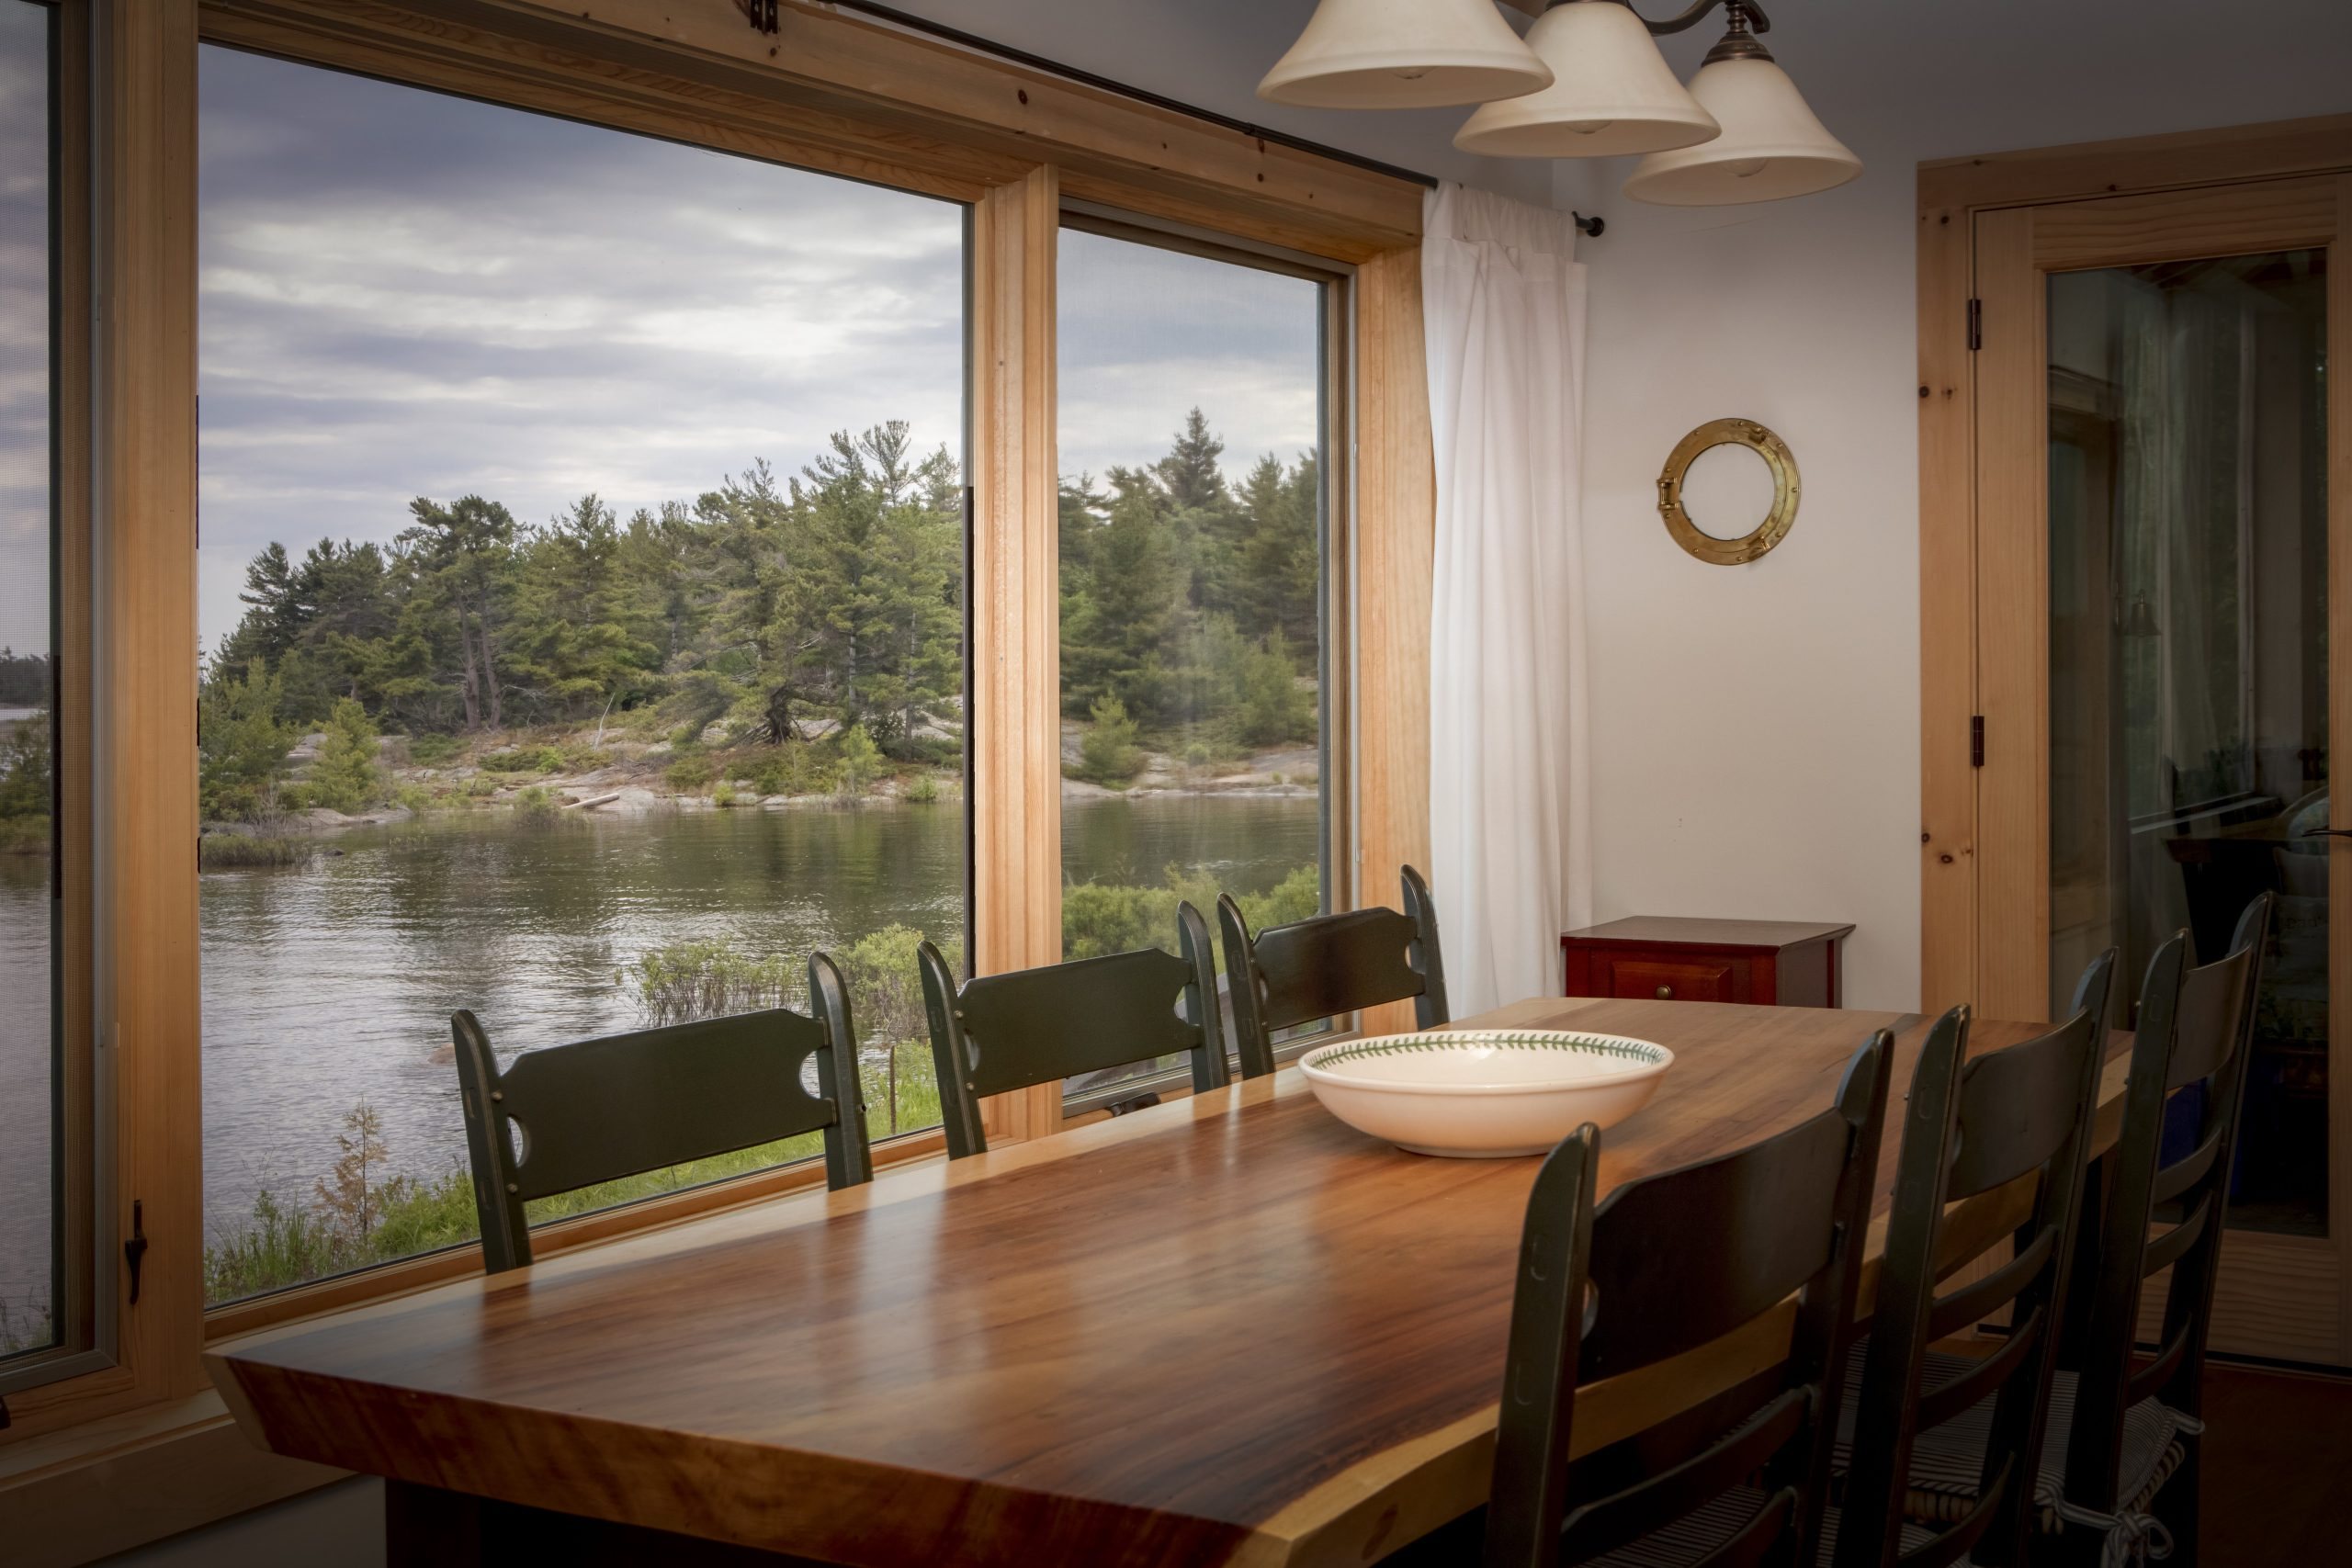 Normerica Timber Frame, Architects & Builders, Collaboration, Lakeside Cottage, Georgian Bay, Dining Room